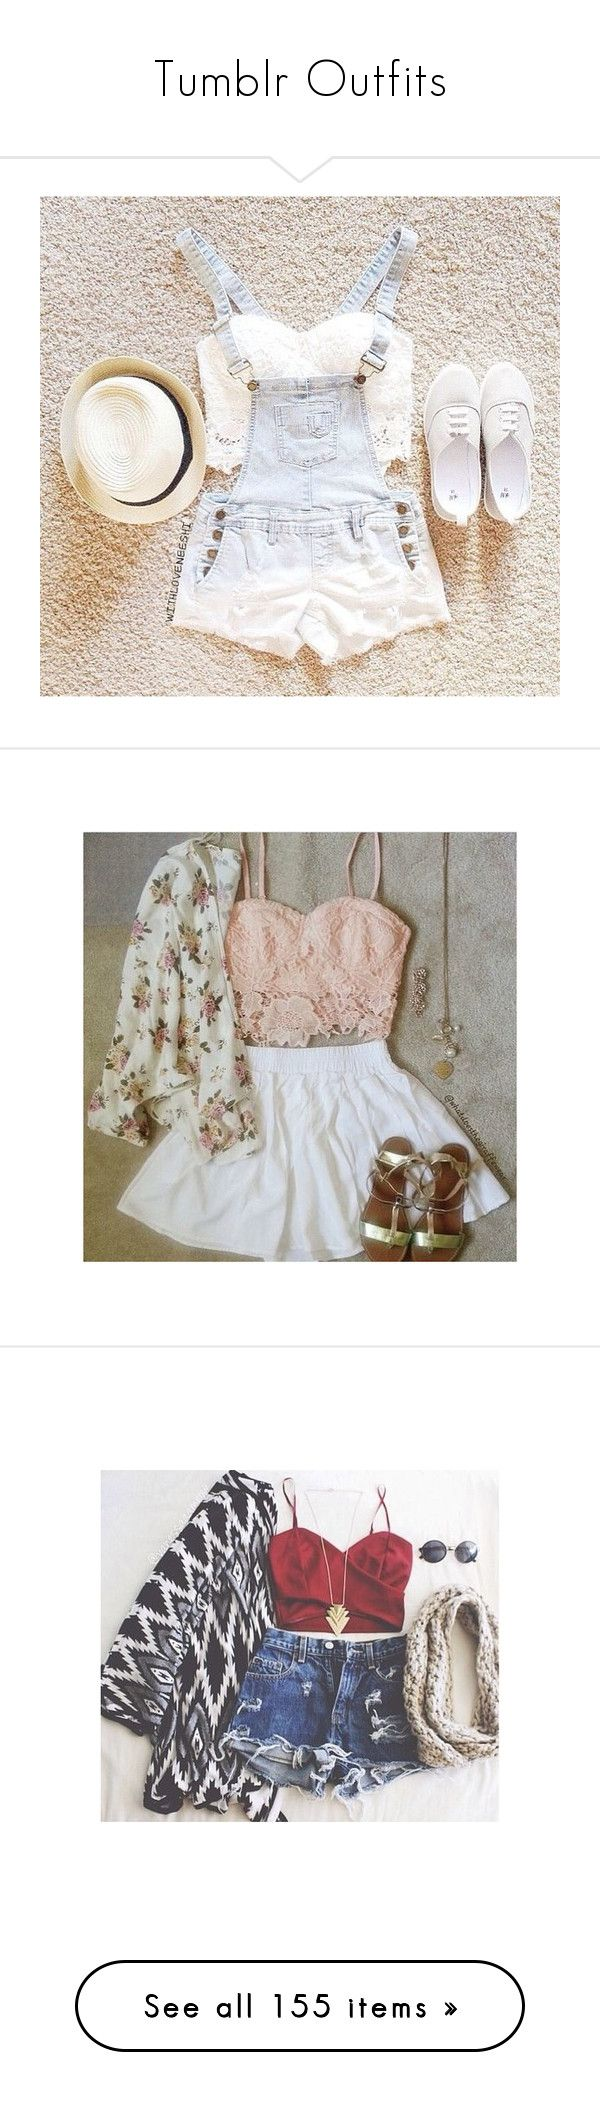 """""""Tumblr Outfits"""" by fl0ridakilos ❤ liked on Polyvore featuring tumblr outfits, outfits, levi cut offs, denim cut offs, pictures, instagram, backgrounds, jewelry, fillers and heart-shaped jewelry"""